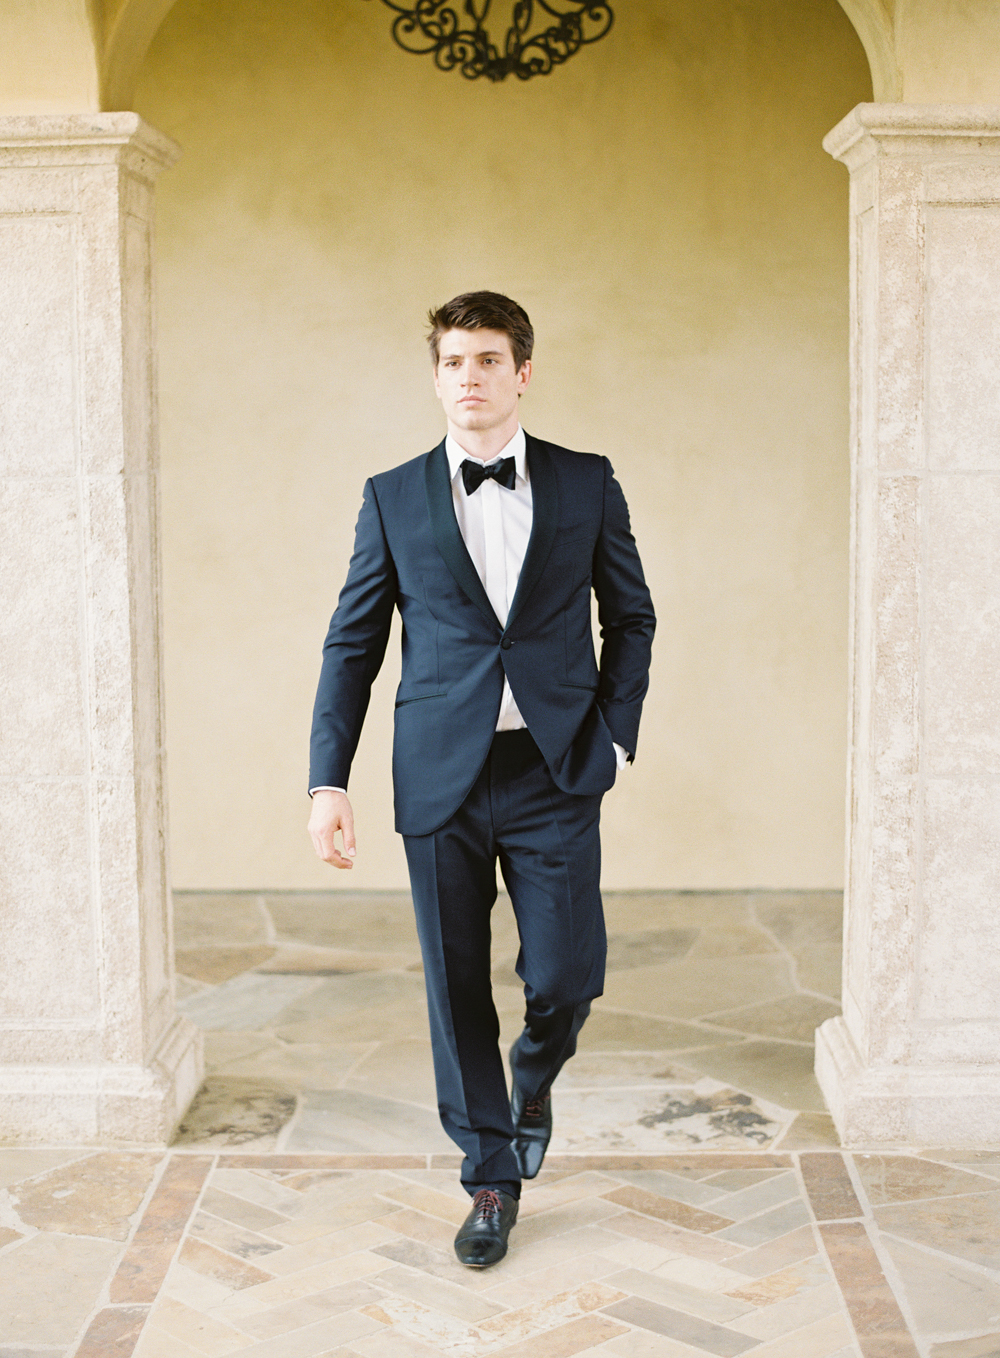 Luxury groom tux Canali | Luxury wedding | Hidden Castle | Rancho Santa Fe | Estate Events with Venuelust | neutral wedding | European Wedding Inspiration | French wedding | France wedding photographer | Southern California film photographer | San Diego wedding photographer | Whiskers and Willow Photography